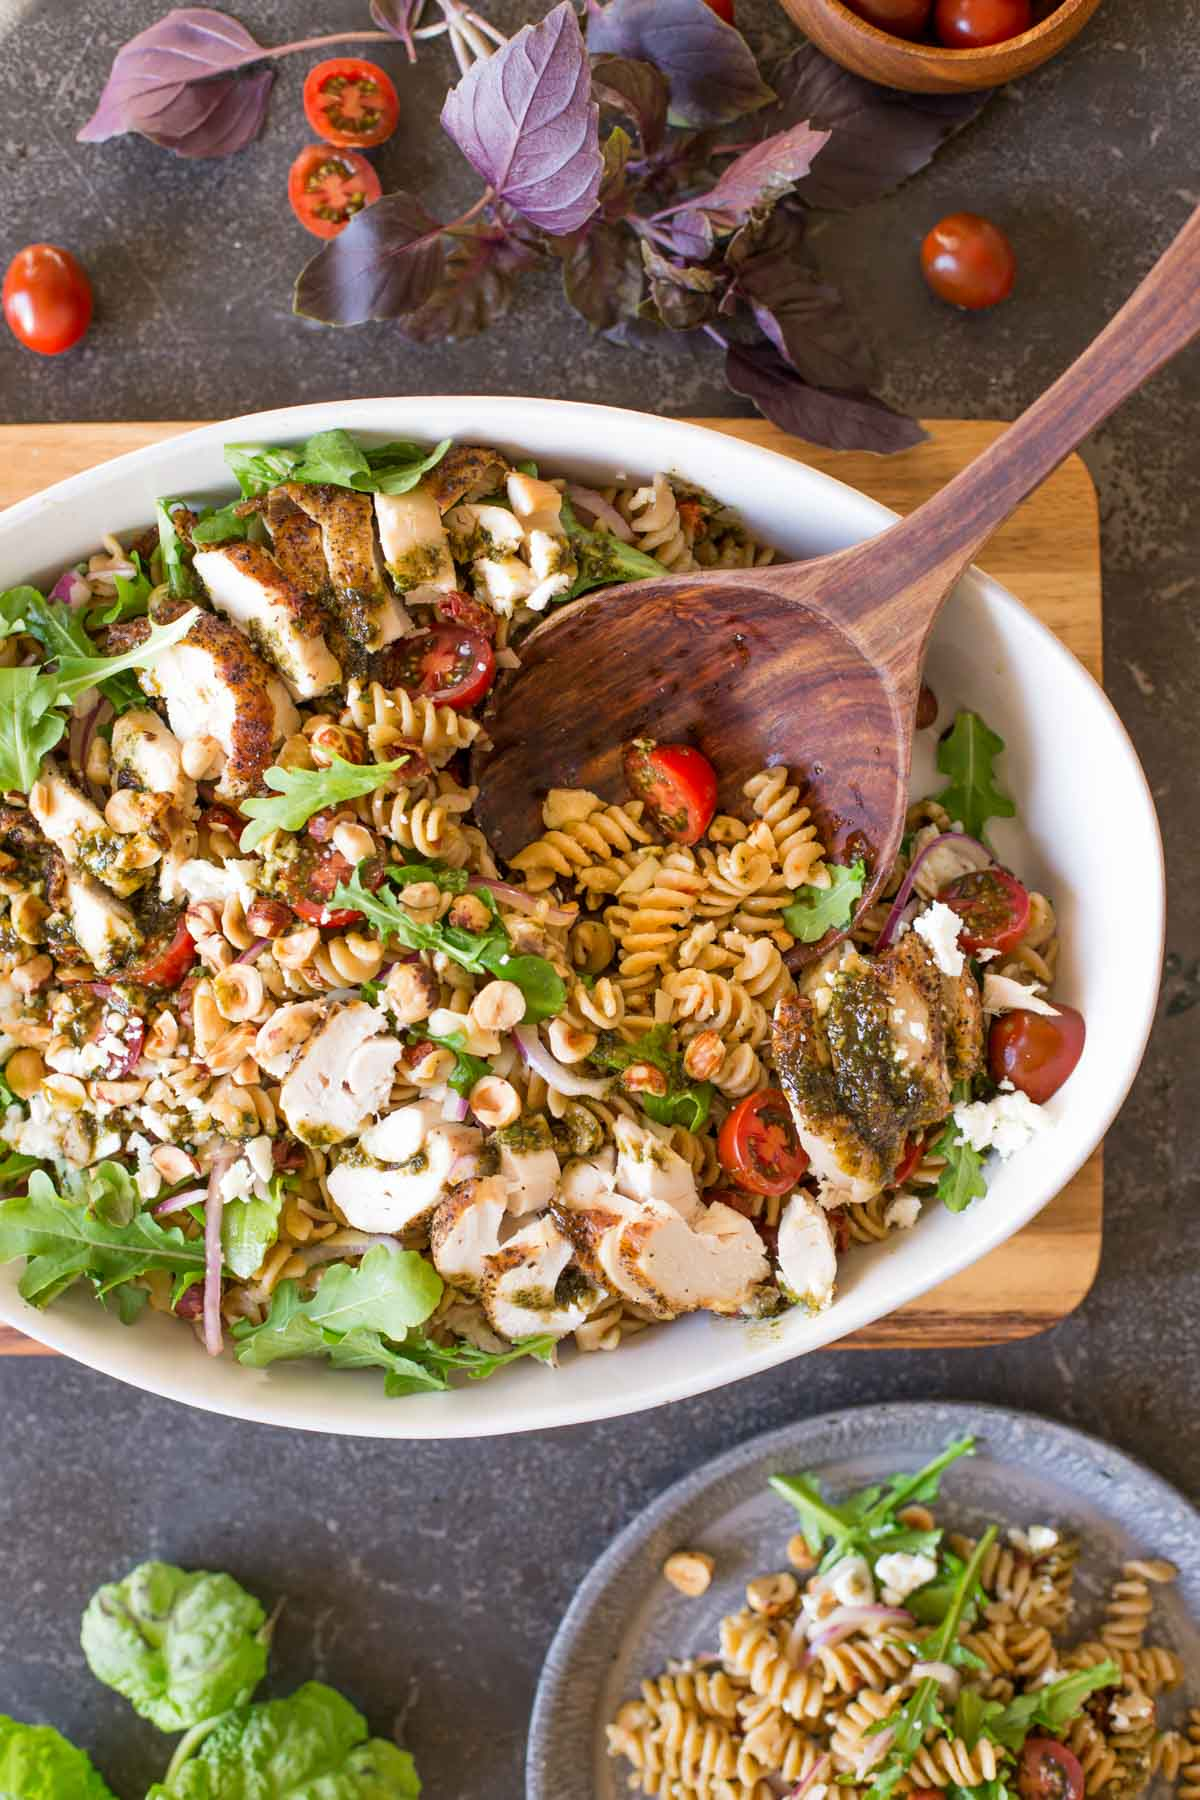 A healthy and fresh summertime pasta salad bursting with flavors. Tossed with a quick and easy vinaigrette!